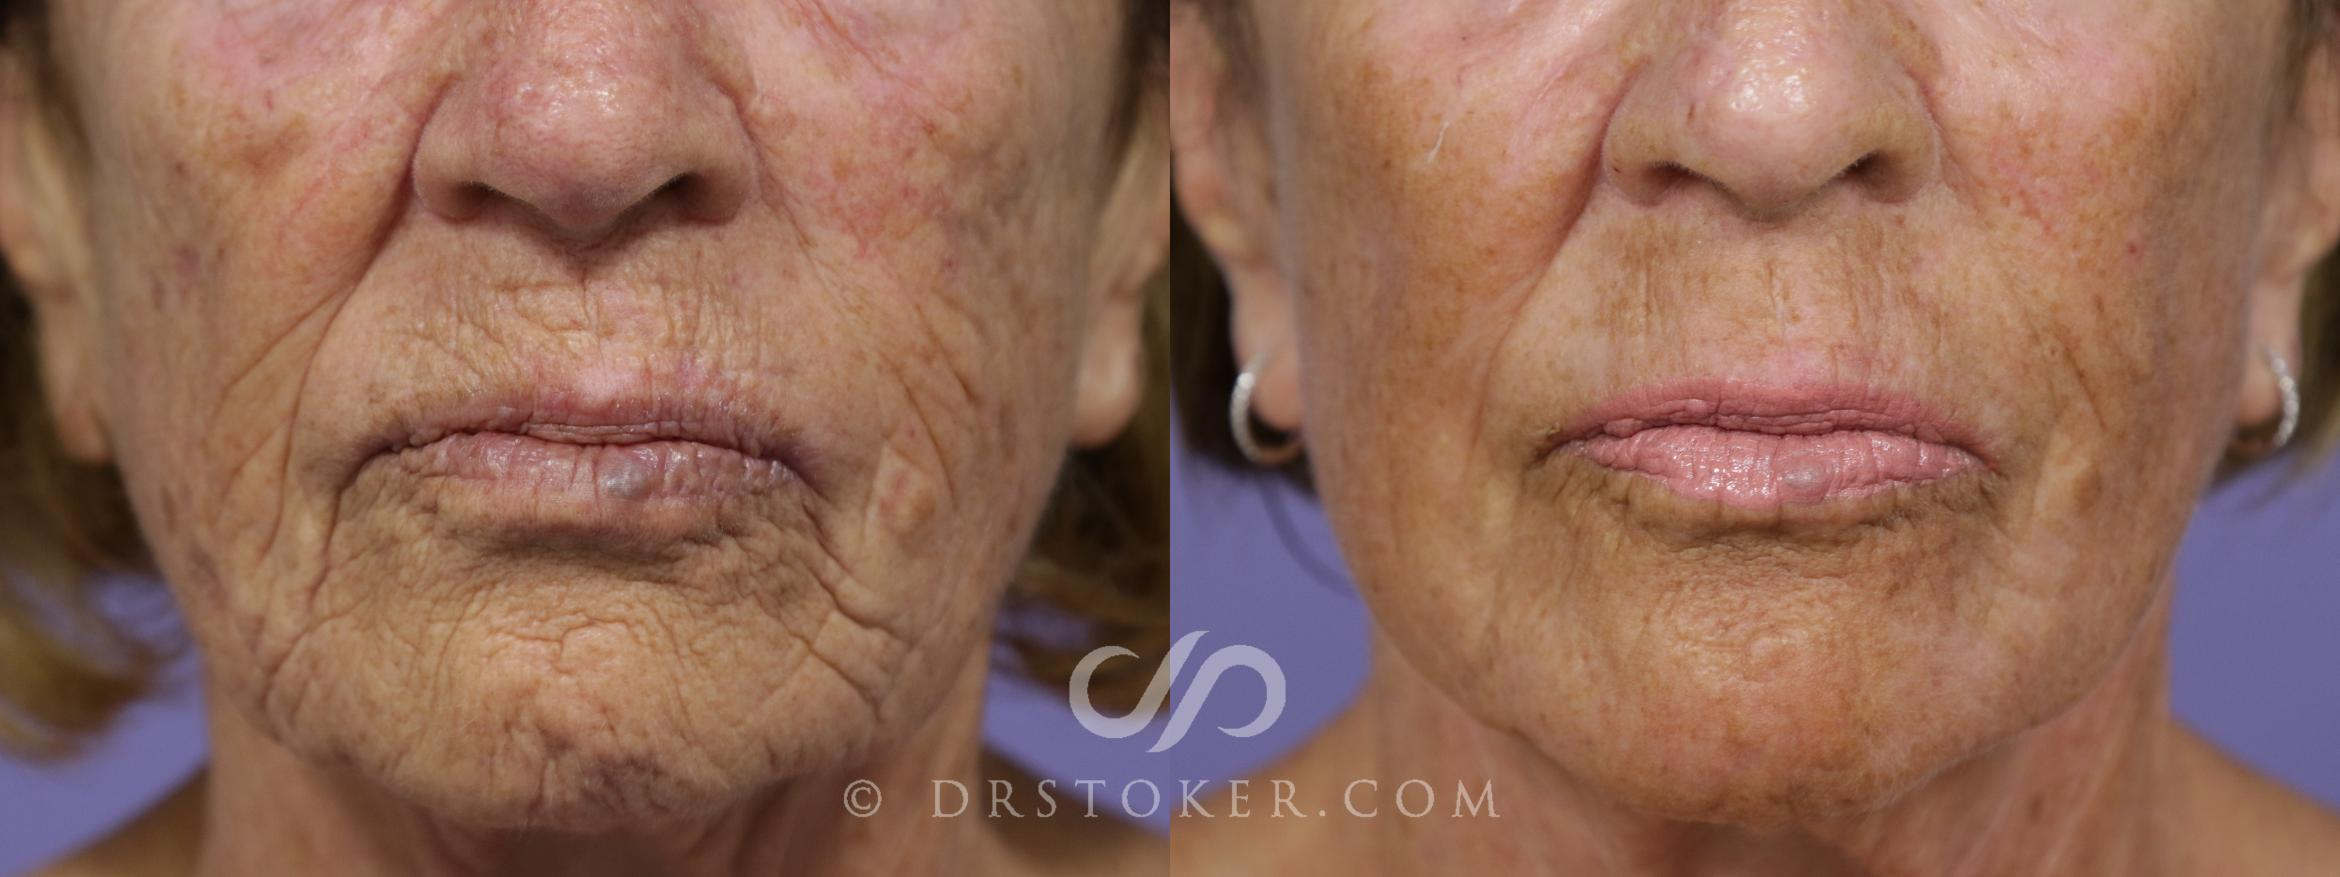 Laser Resurfacing Mouth Case 1533 Before & After View #1 | Marina del Rey, CA | Dr. David Stoker